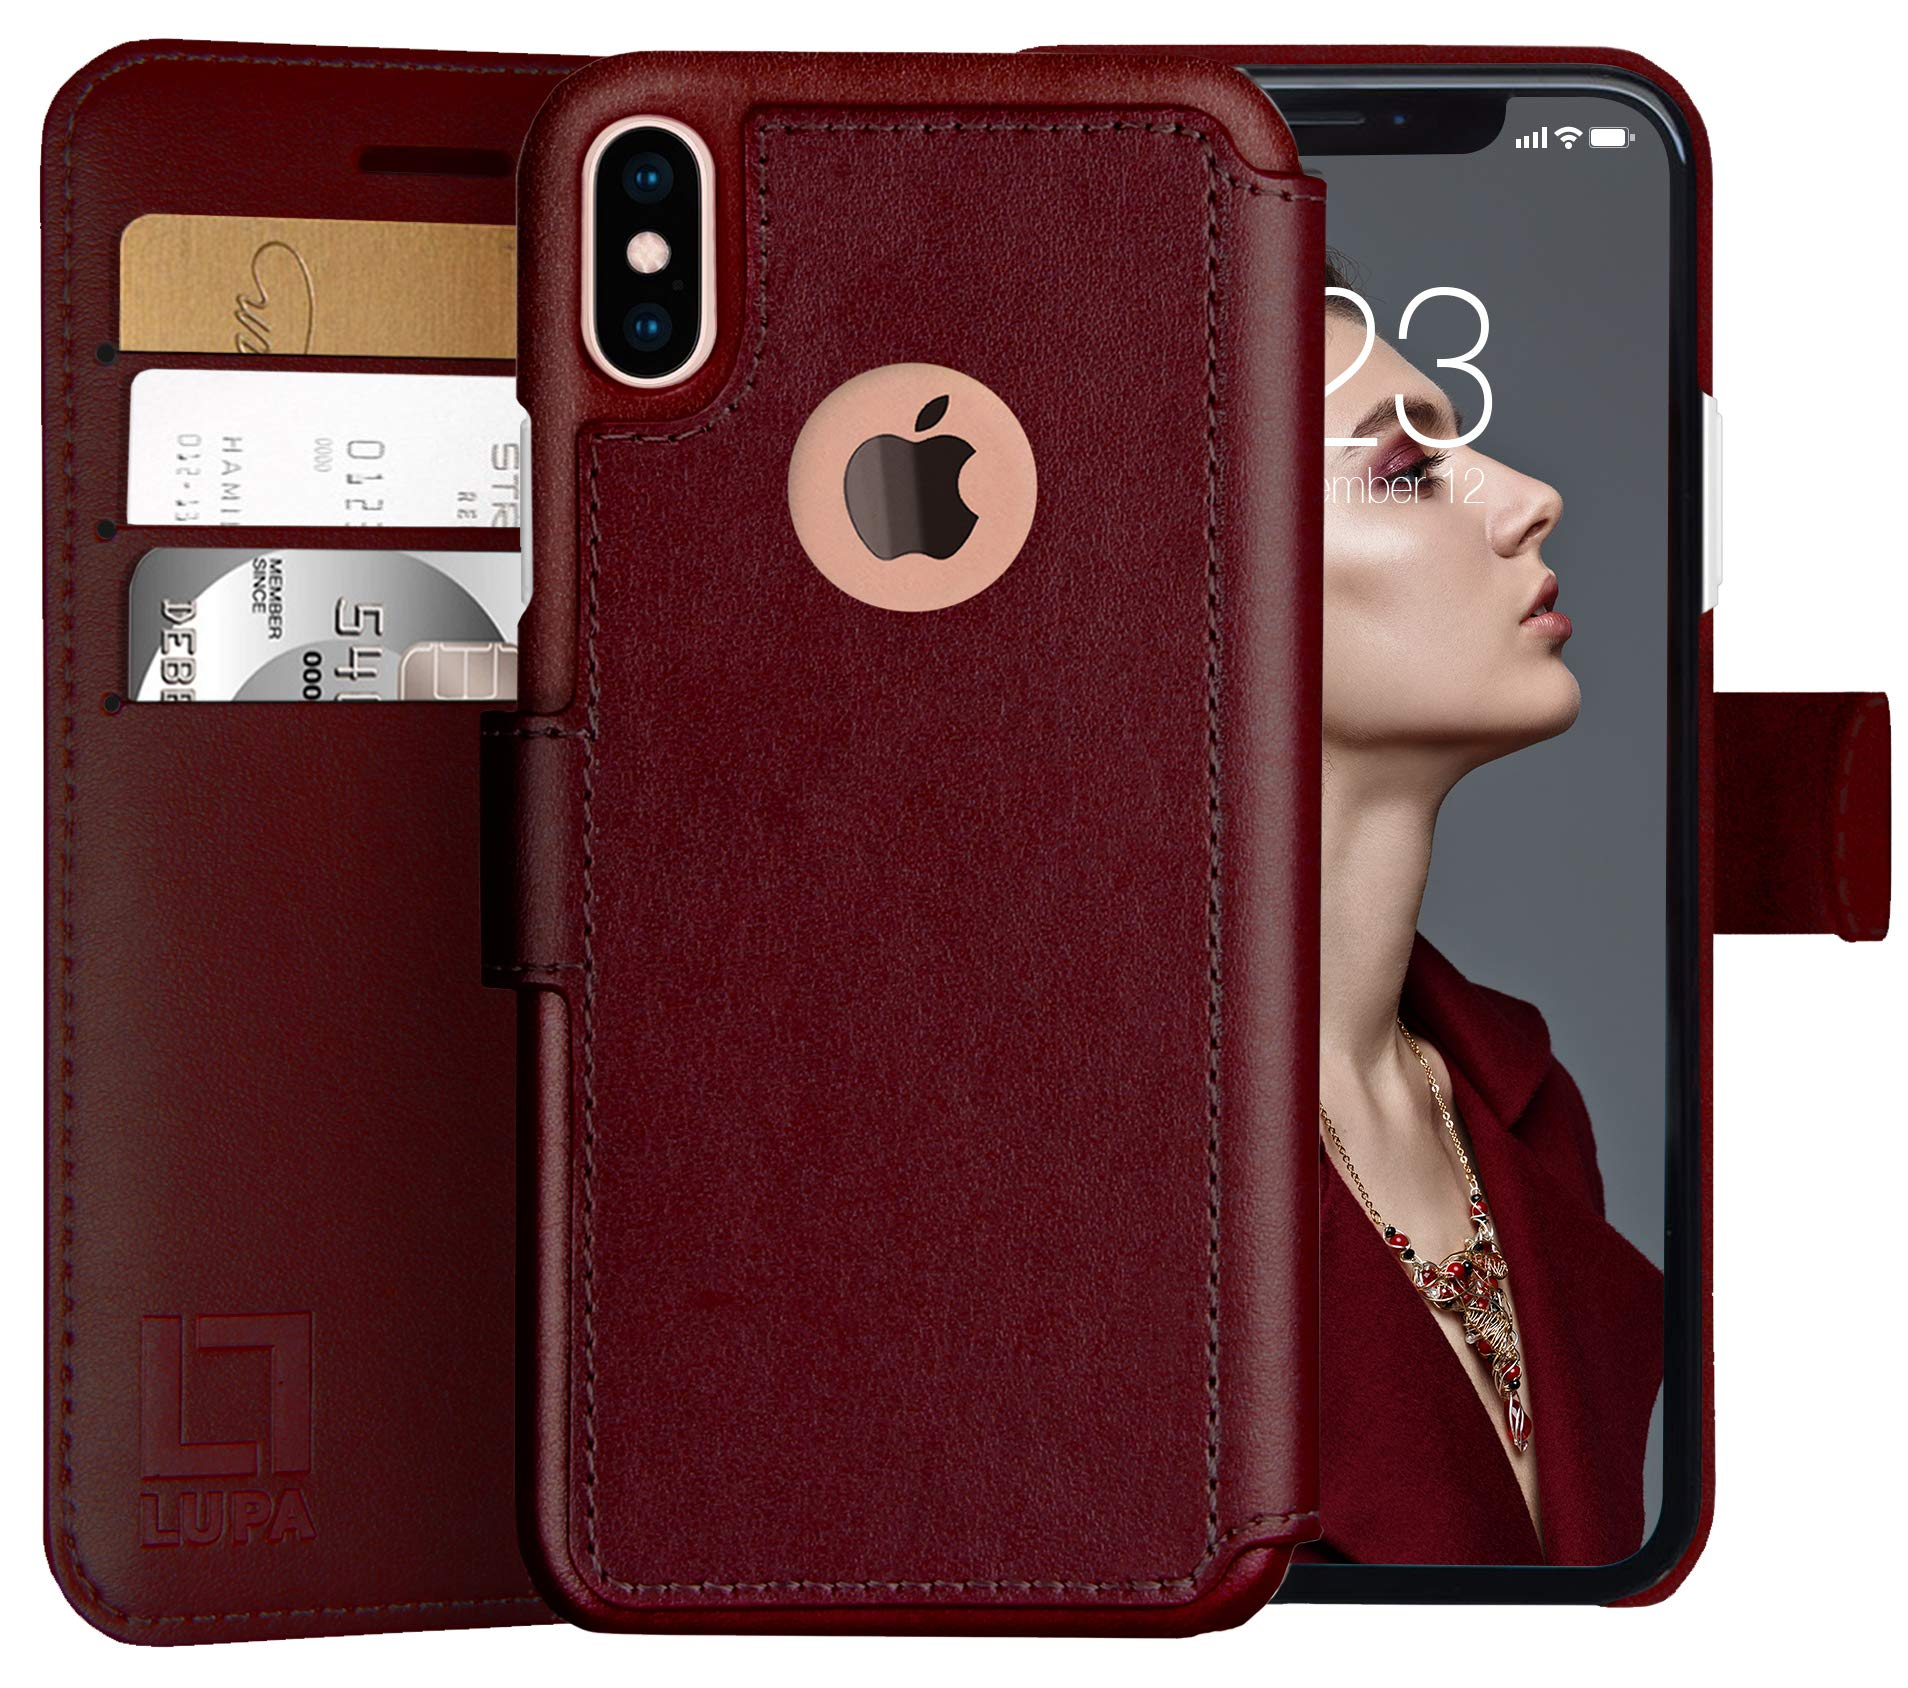 LUPA iPhone Xs Wallet case, iPhone X Wallet Case, Durable and Slim, Lightweight with Classic Design & Ultra-Strong Magnetic Closure, Faux Leather, Burgundy, for Apple iPhone Xs/X